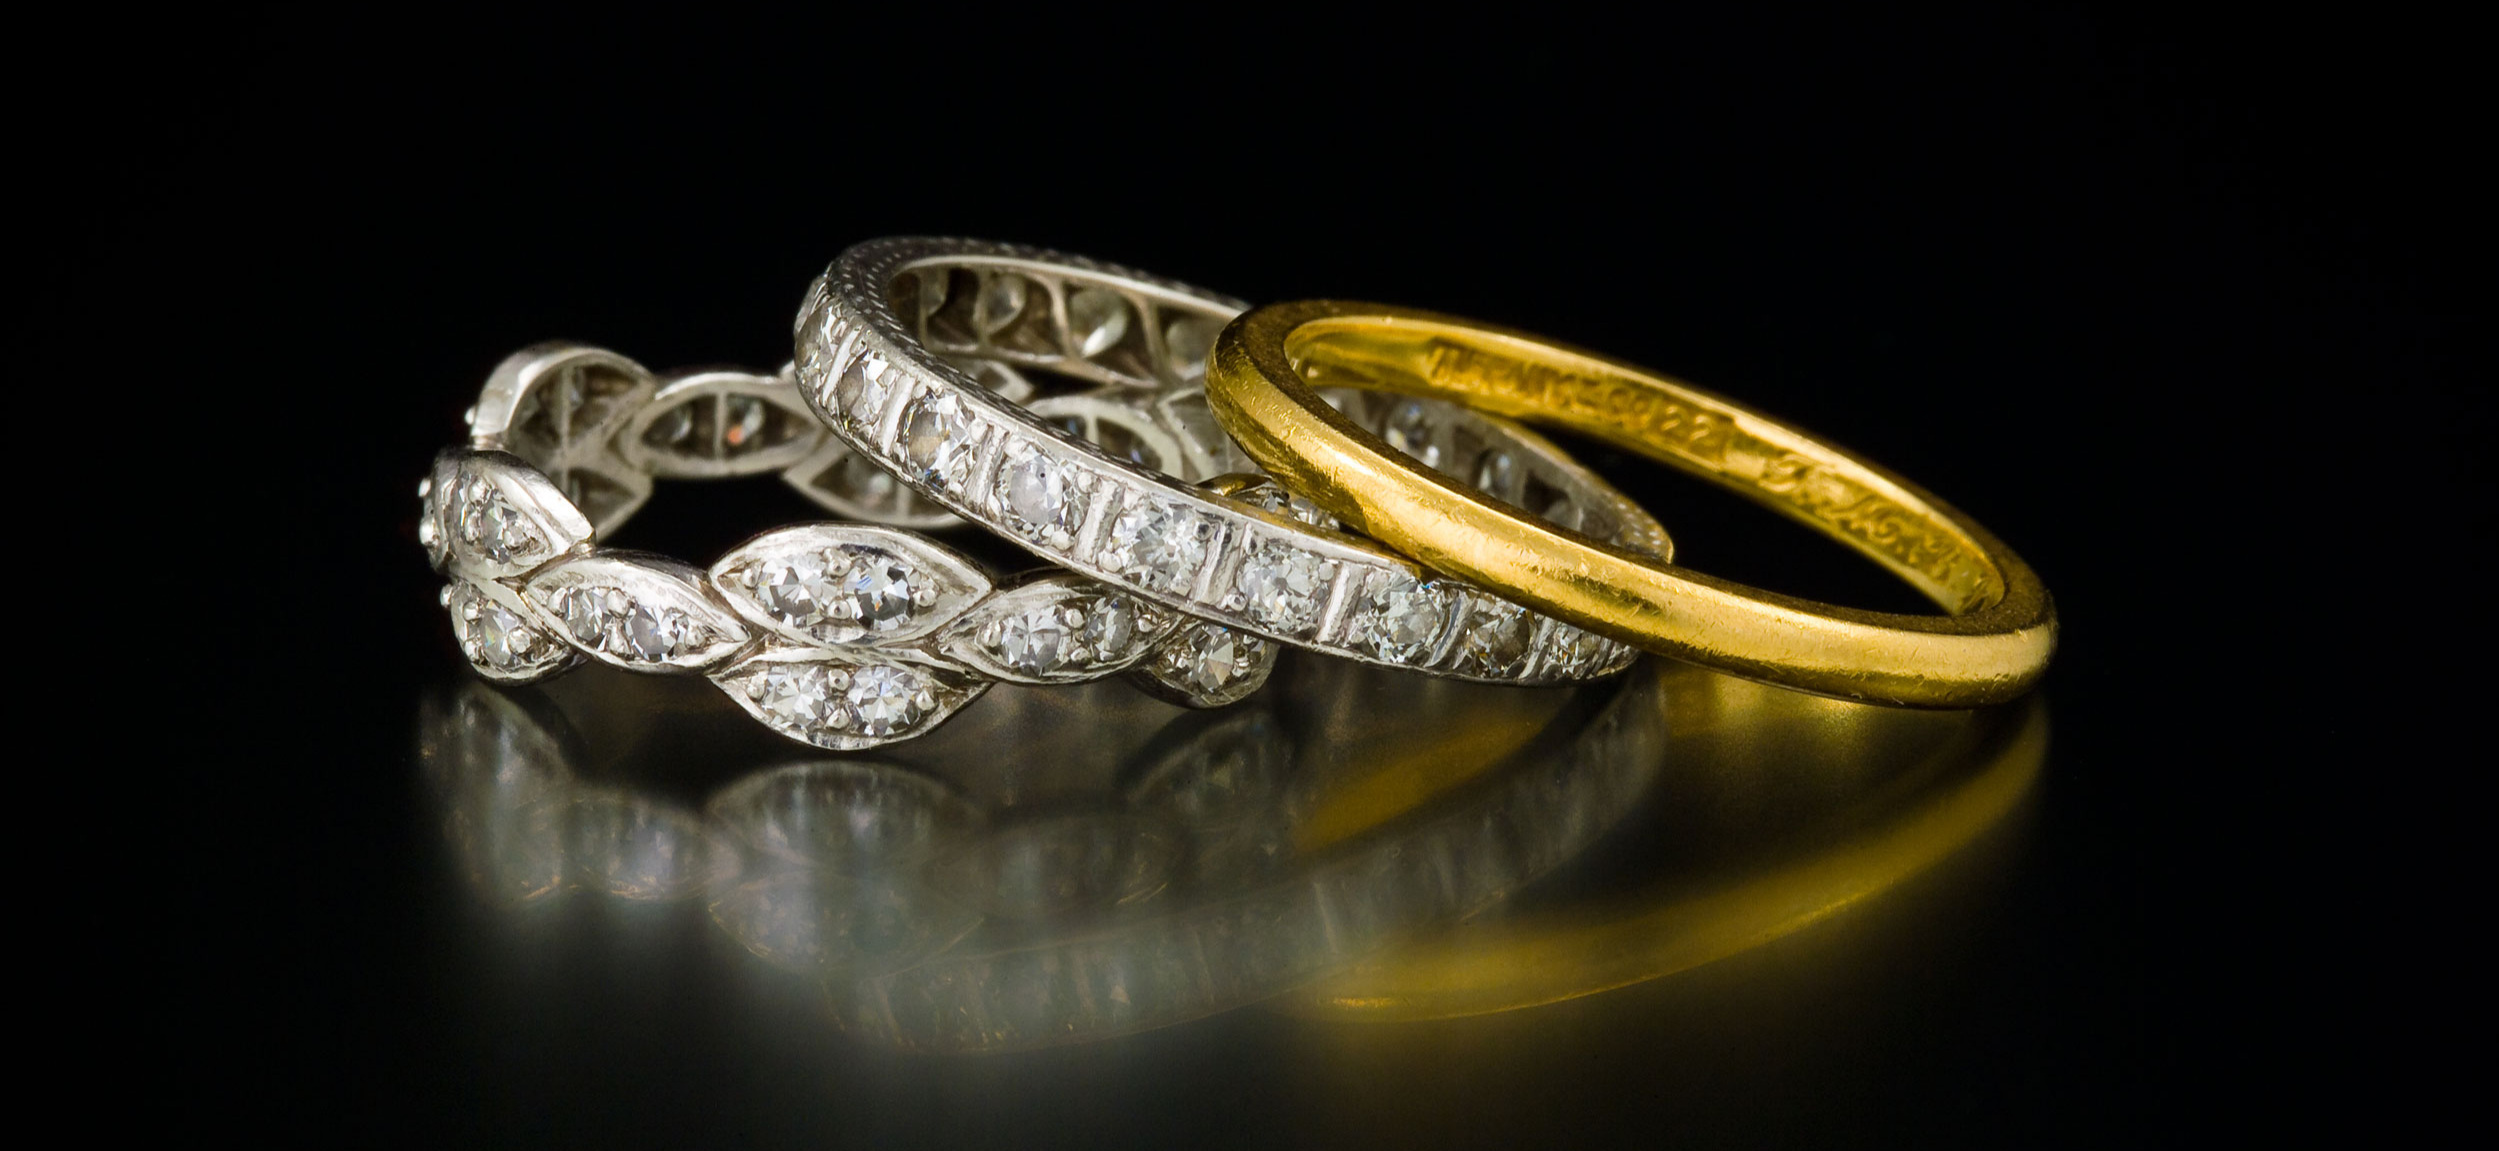 - Portland's Best Collection of Vintage Engagement Ringsfeaturing Ethical Old Cut Diamonds